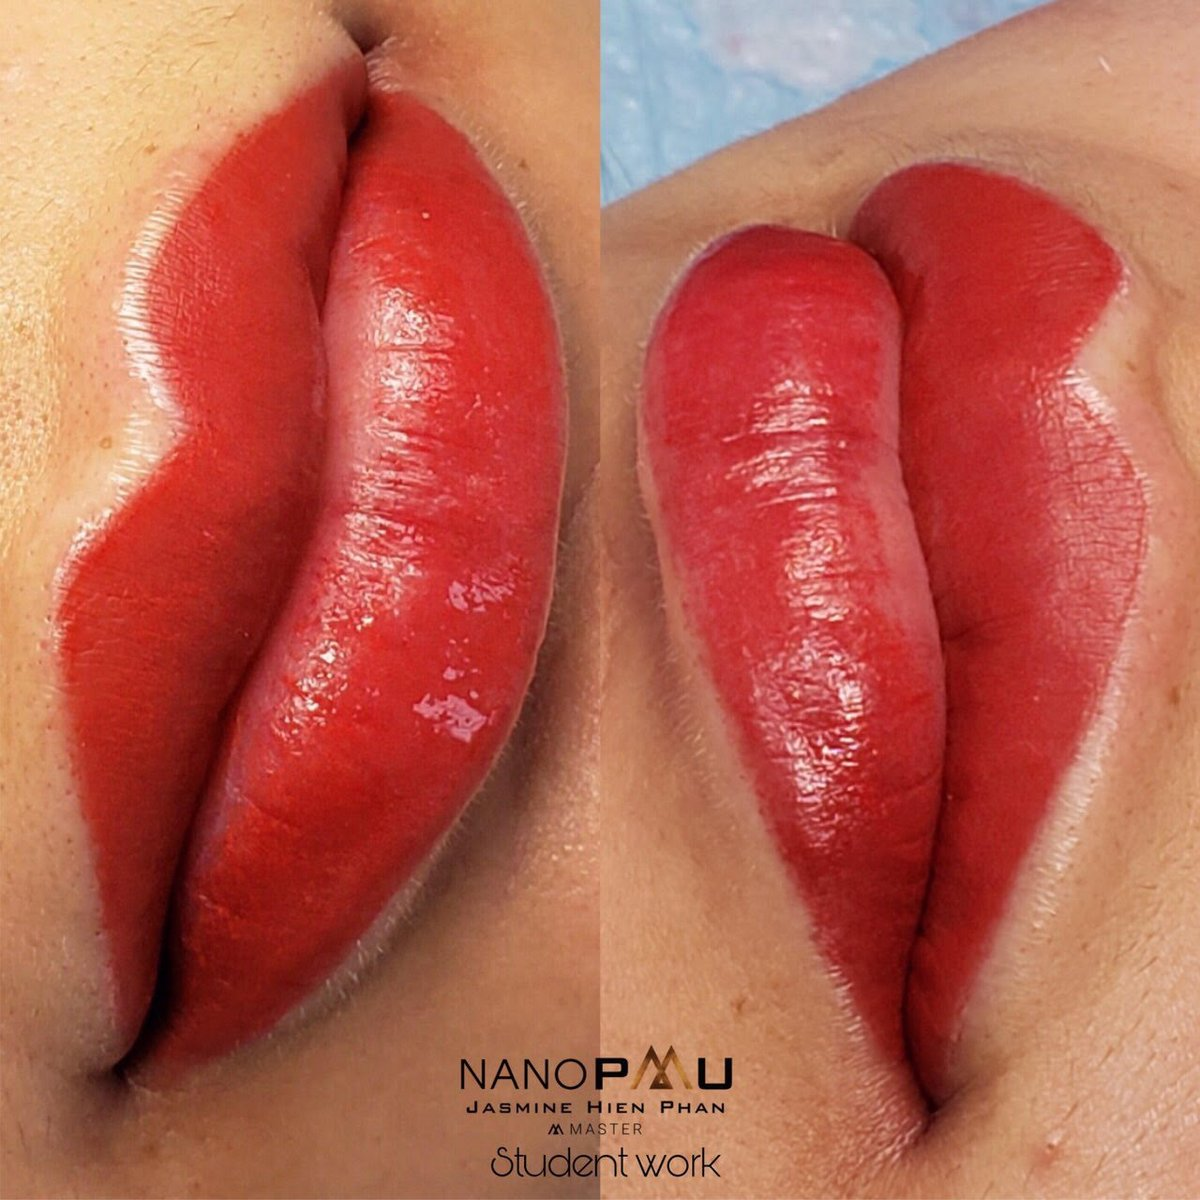 Nano PMU for lips is ideal for anyone who wants to correct thin lips or craves the appearance of a fuller, more defined lip line.⁠ Register now - https://soo.nr/1Ya5  ⁠ ⁠ #phibrows #phiartist #phibrowsartist #phiacademy #nano #nanopmu #lipspic.twitter.com/P8TKcTSg0f